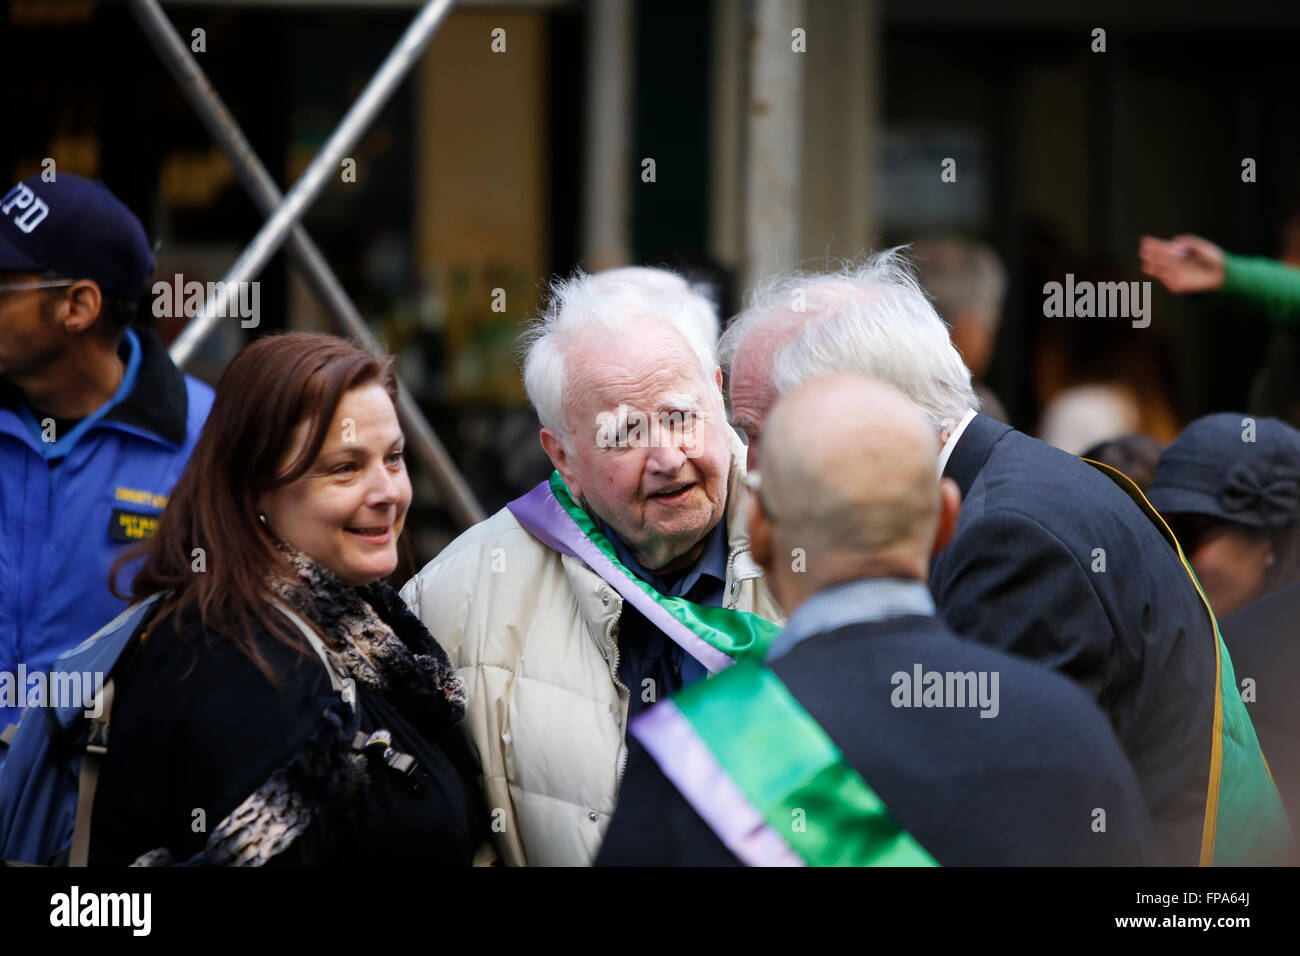 New York City, USA, 17 March 2016. St Patrick's Day parade:  Author & raconteur Malachy McCourt chats with - Stock Image